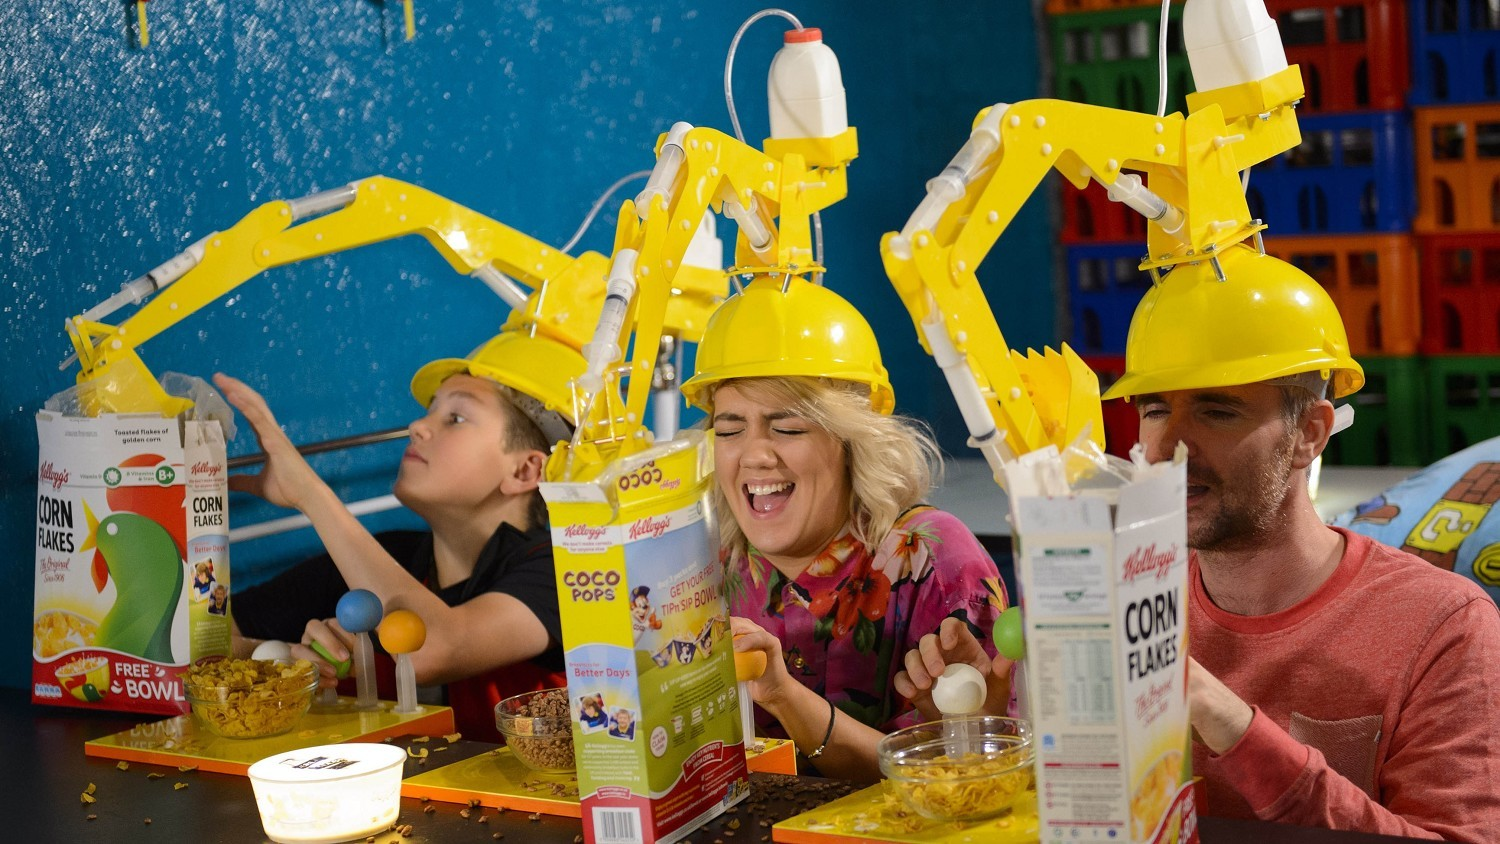 Image: Jacob Tennet, Leah O'Connor and Martin Teall use Crane Head Cereal Serving Devices created by inventor Dominic Wilcox